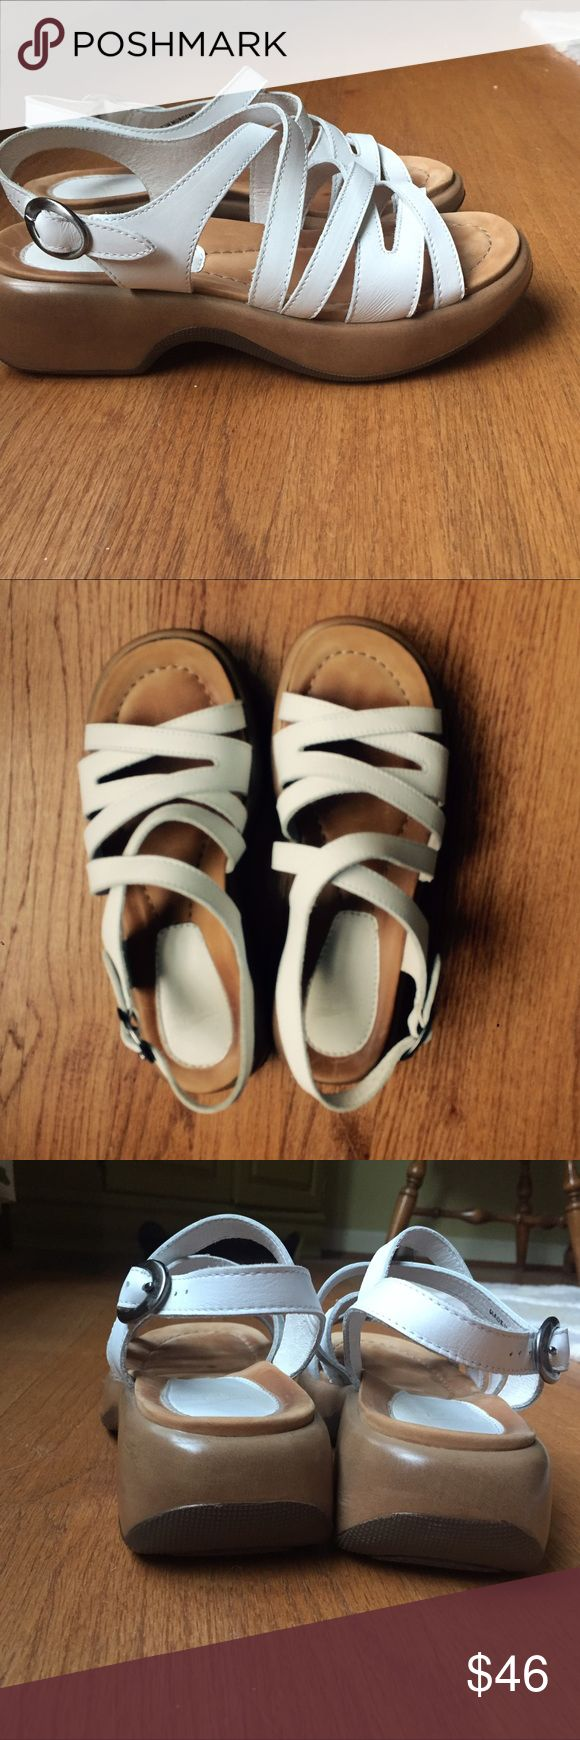 Dansko white sandals Comfy and cute white leather sandals on excellent condition! Dansko Shoes Sandals